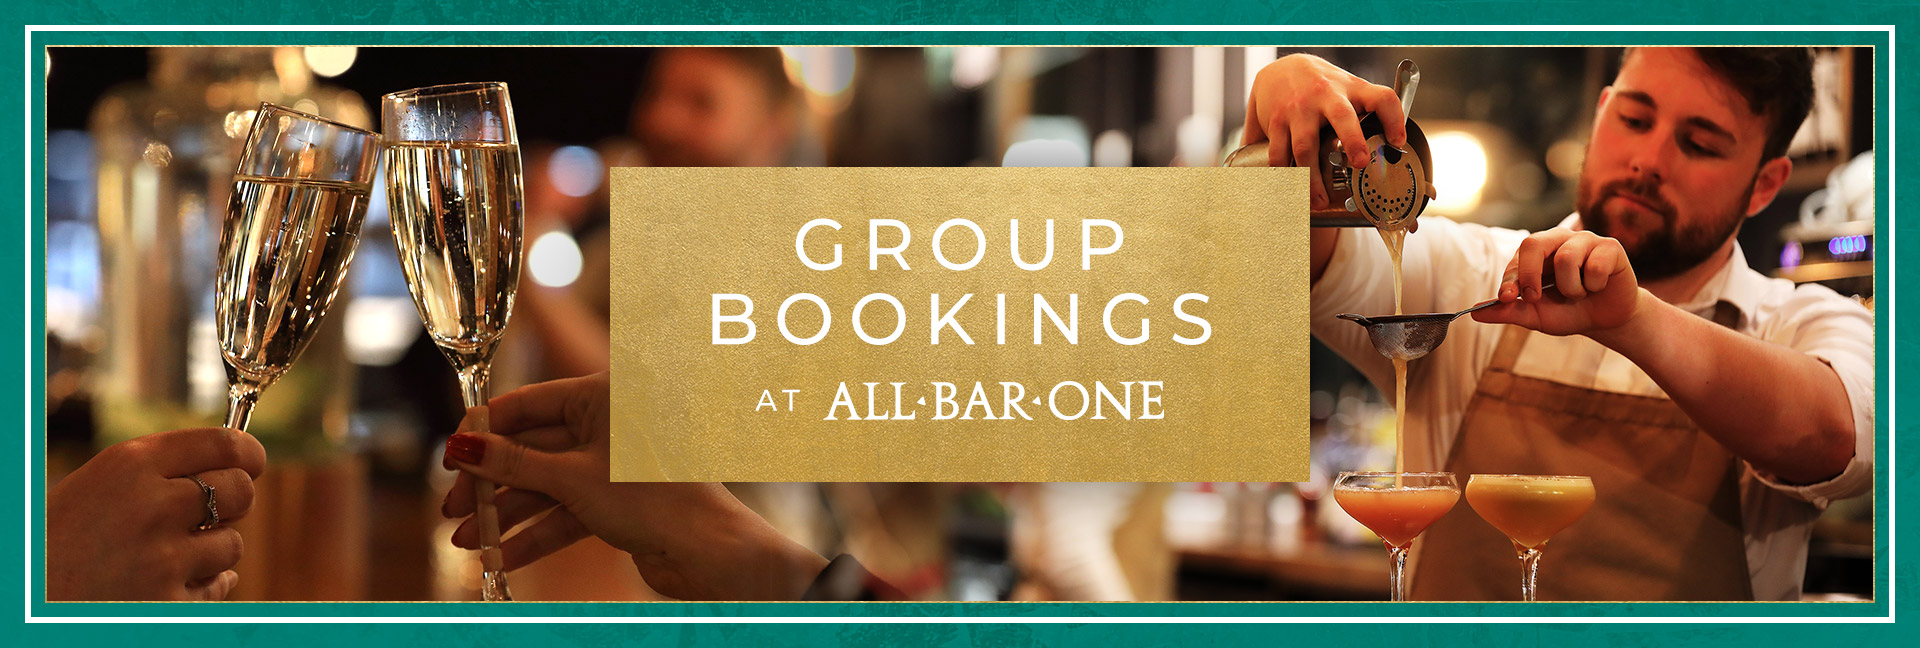 Group Bookings at All Bar One